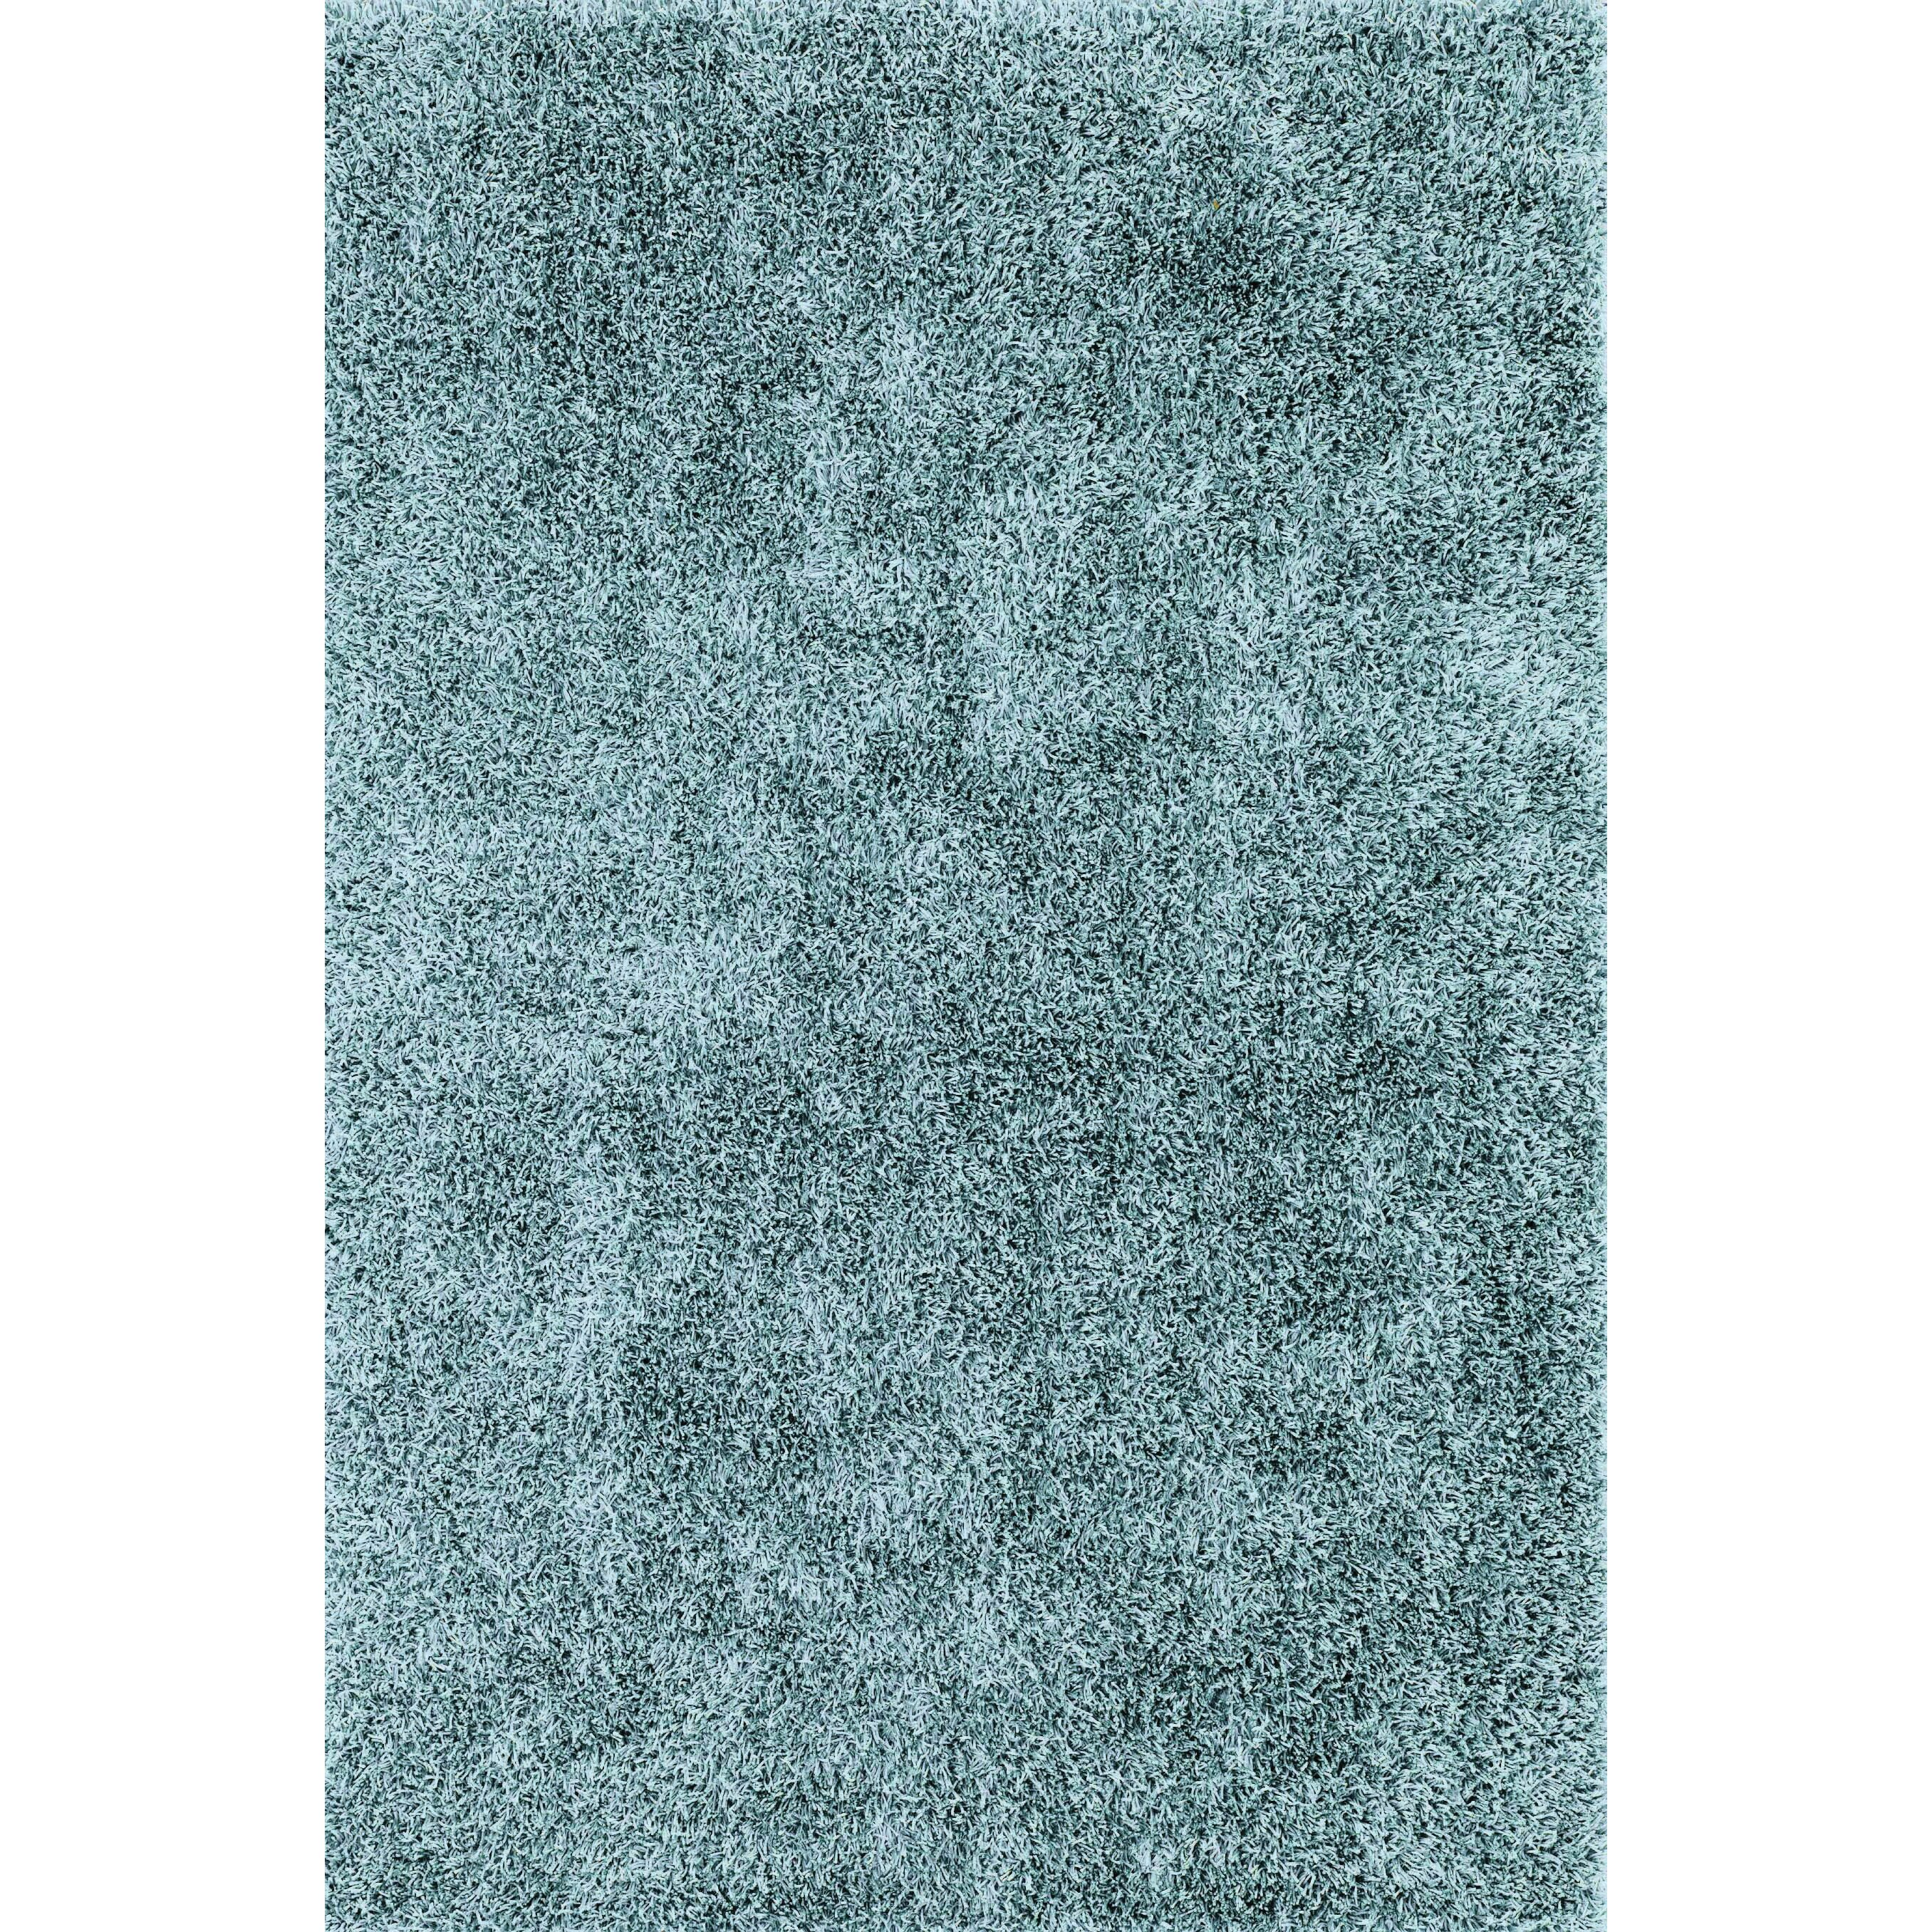 Dalyn Rug Co Illusions Shag Light Blue Area Rug Amp Reviews